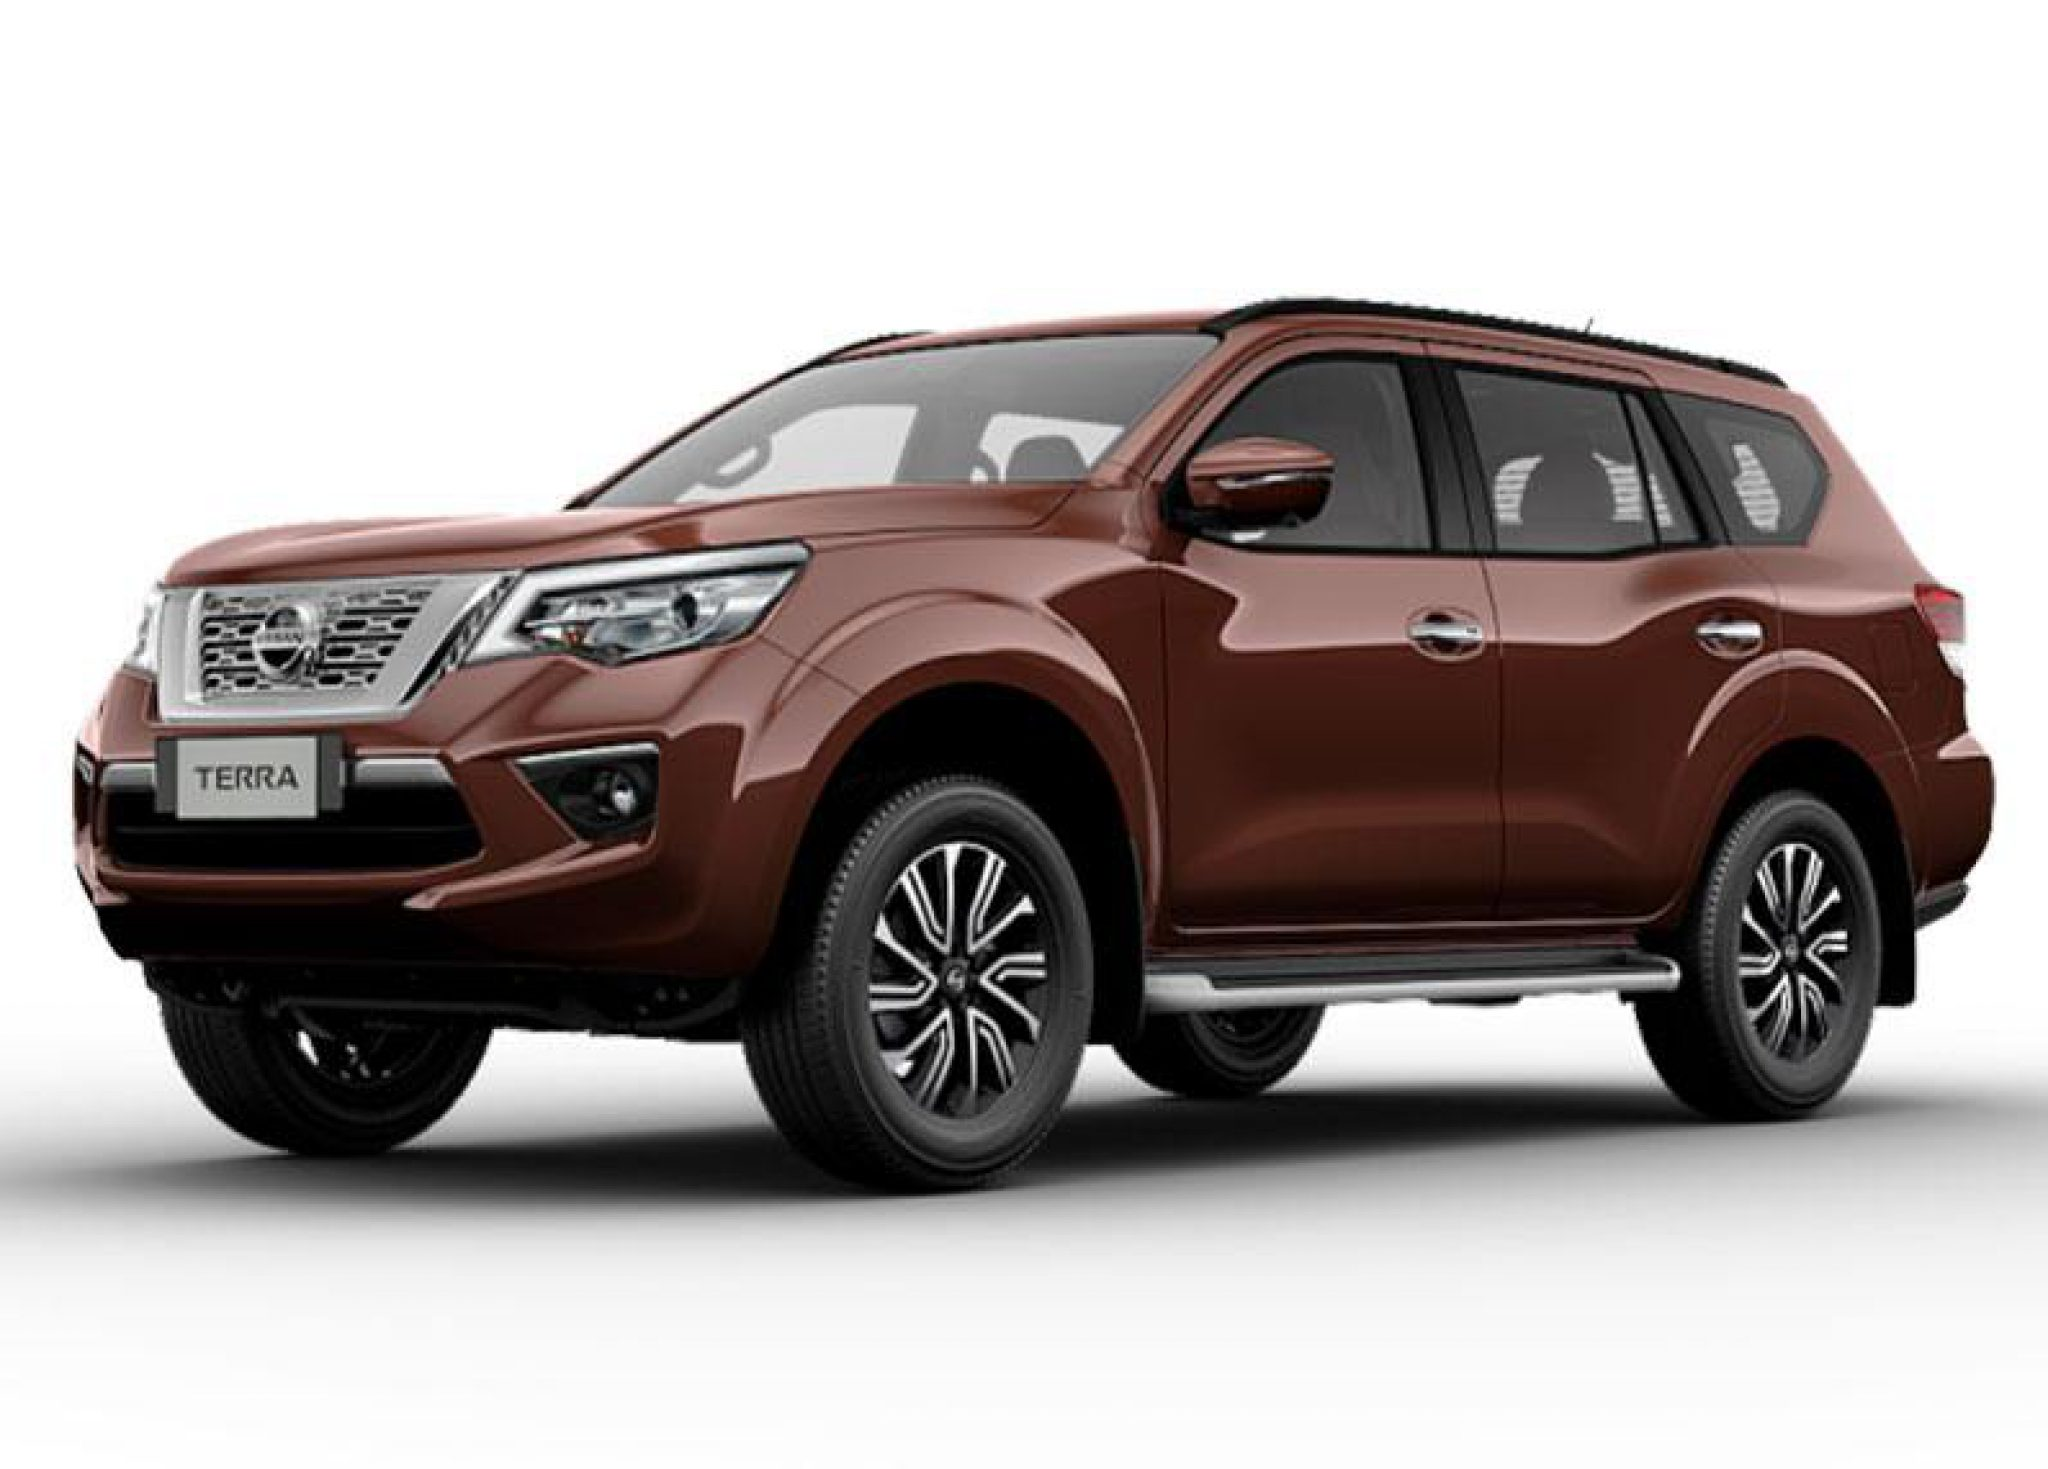 Top 10 SUVs In The Philippines: 2019 Edition